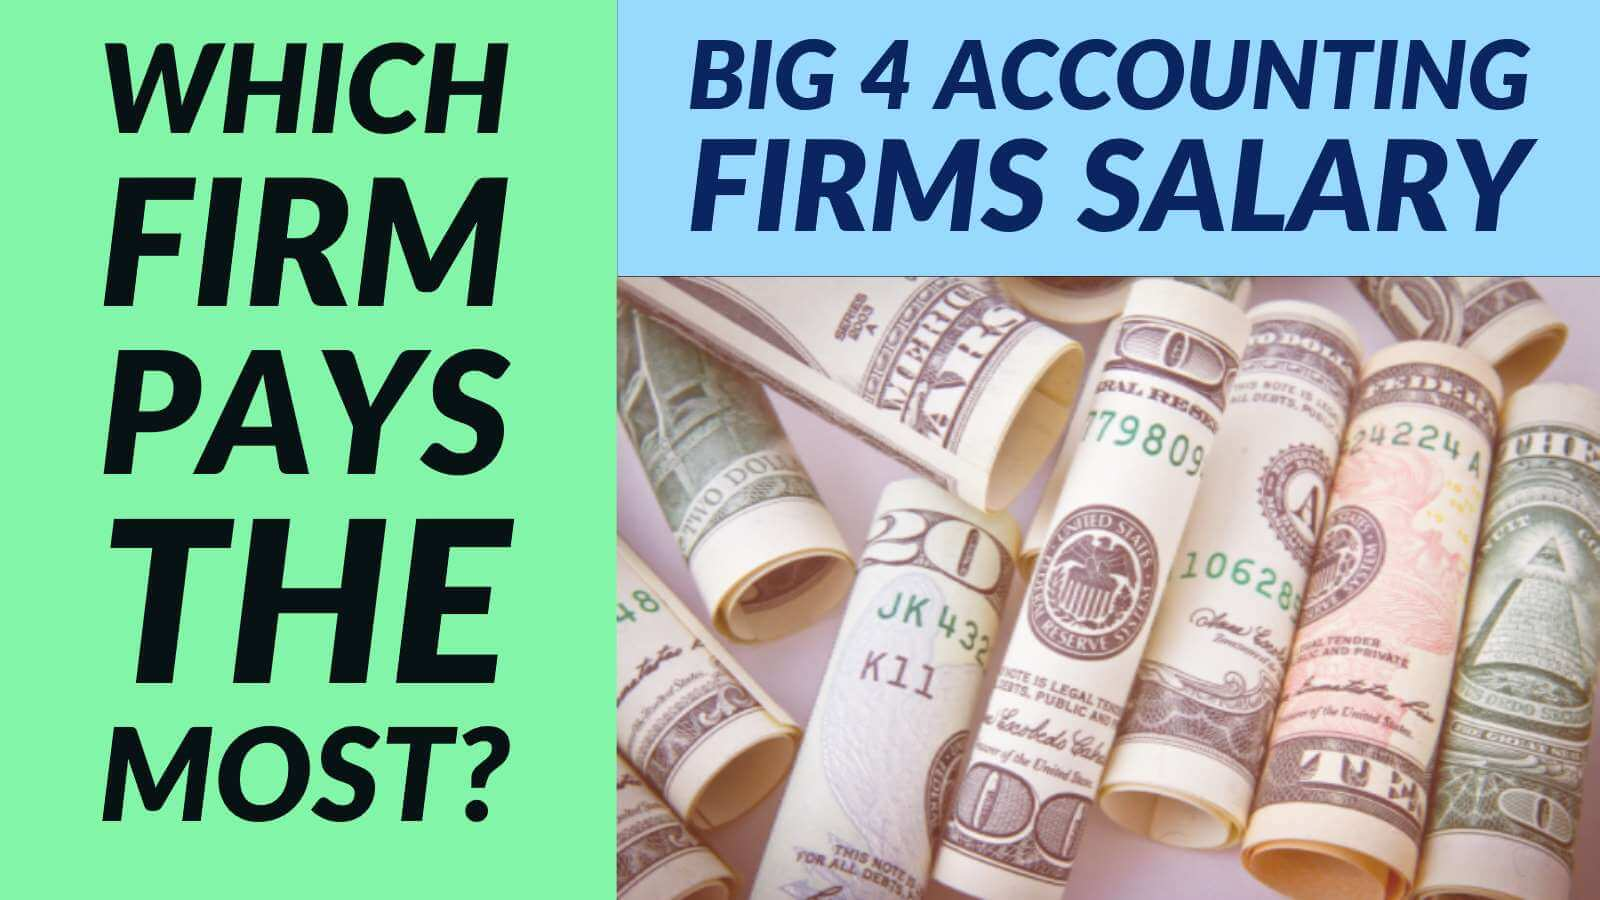 Big 4 Accounting Firms Salary 2018 (Which has the best CPA Salary?)